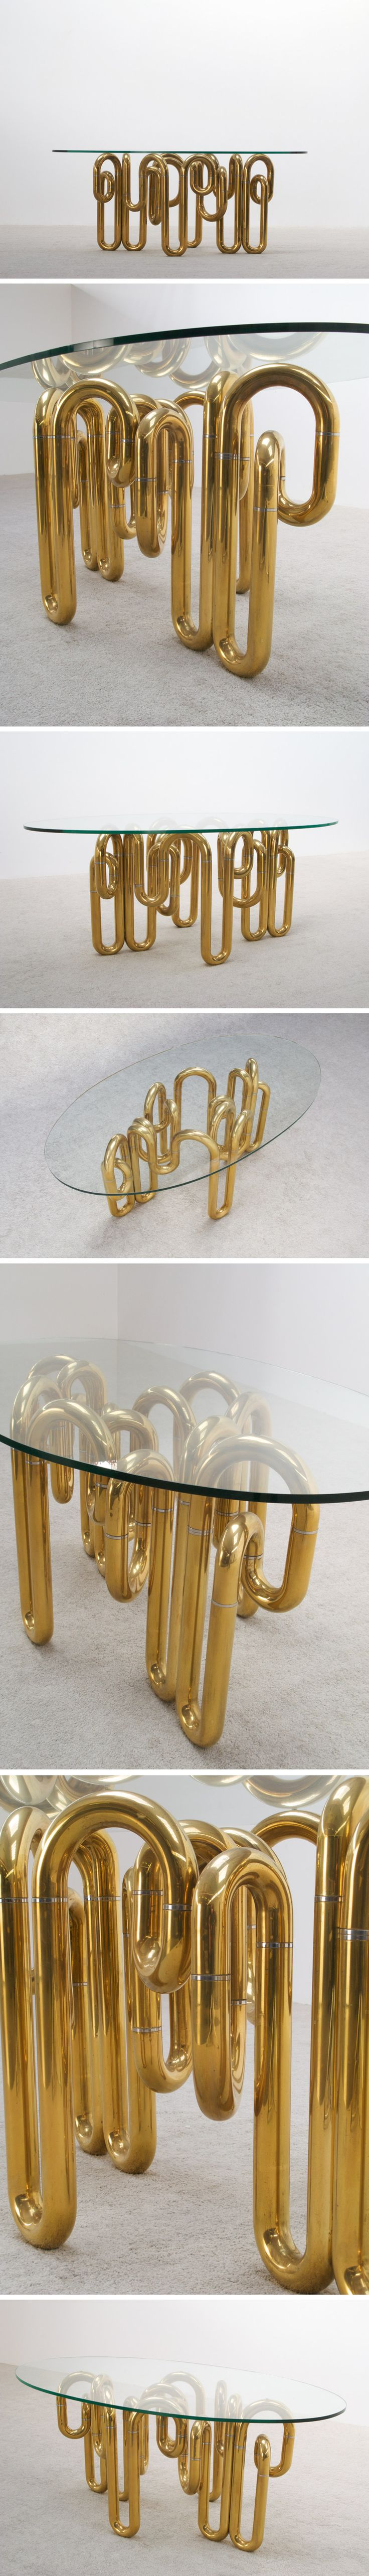 Tubular sculptural brass dining table, maker unknown, 1970s.